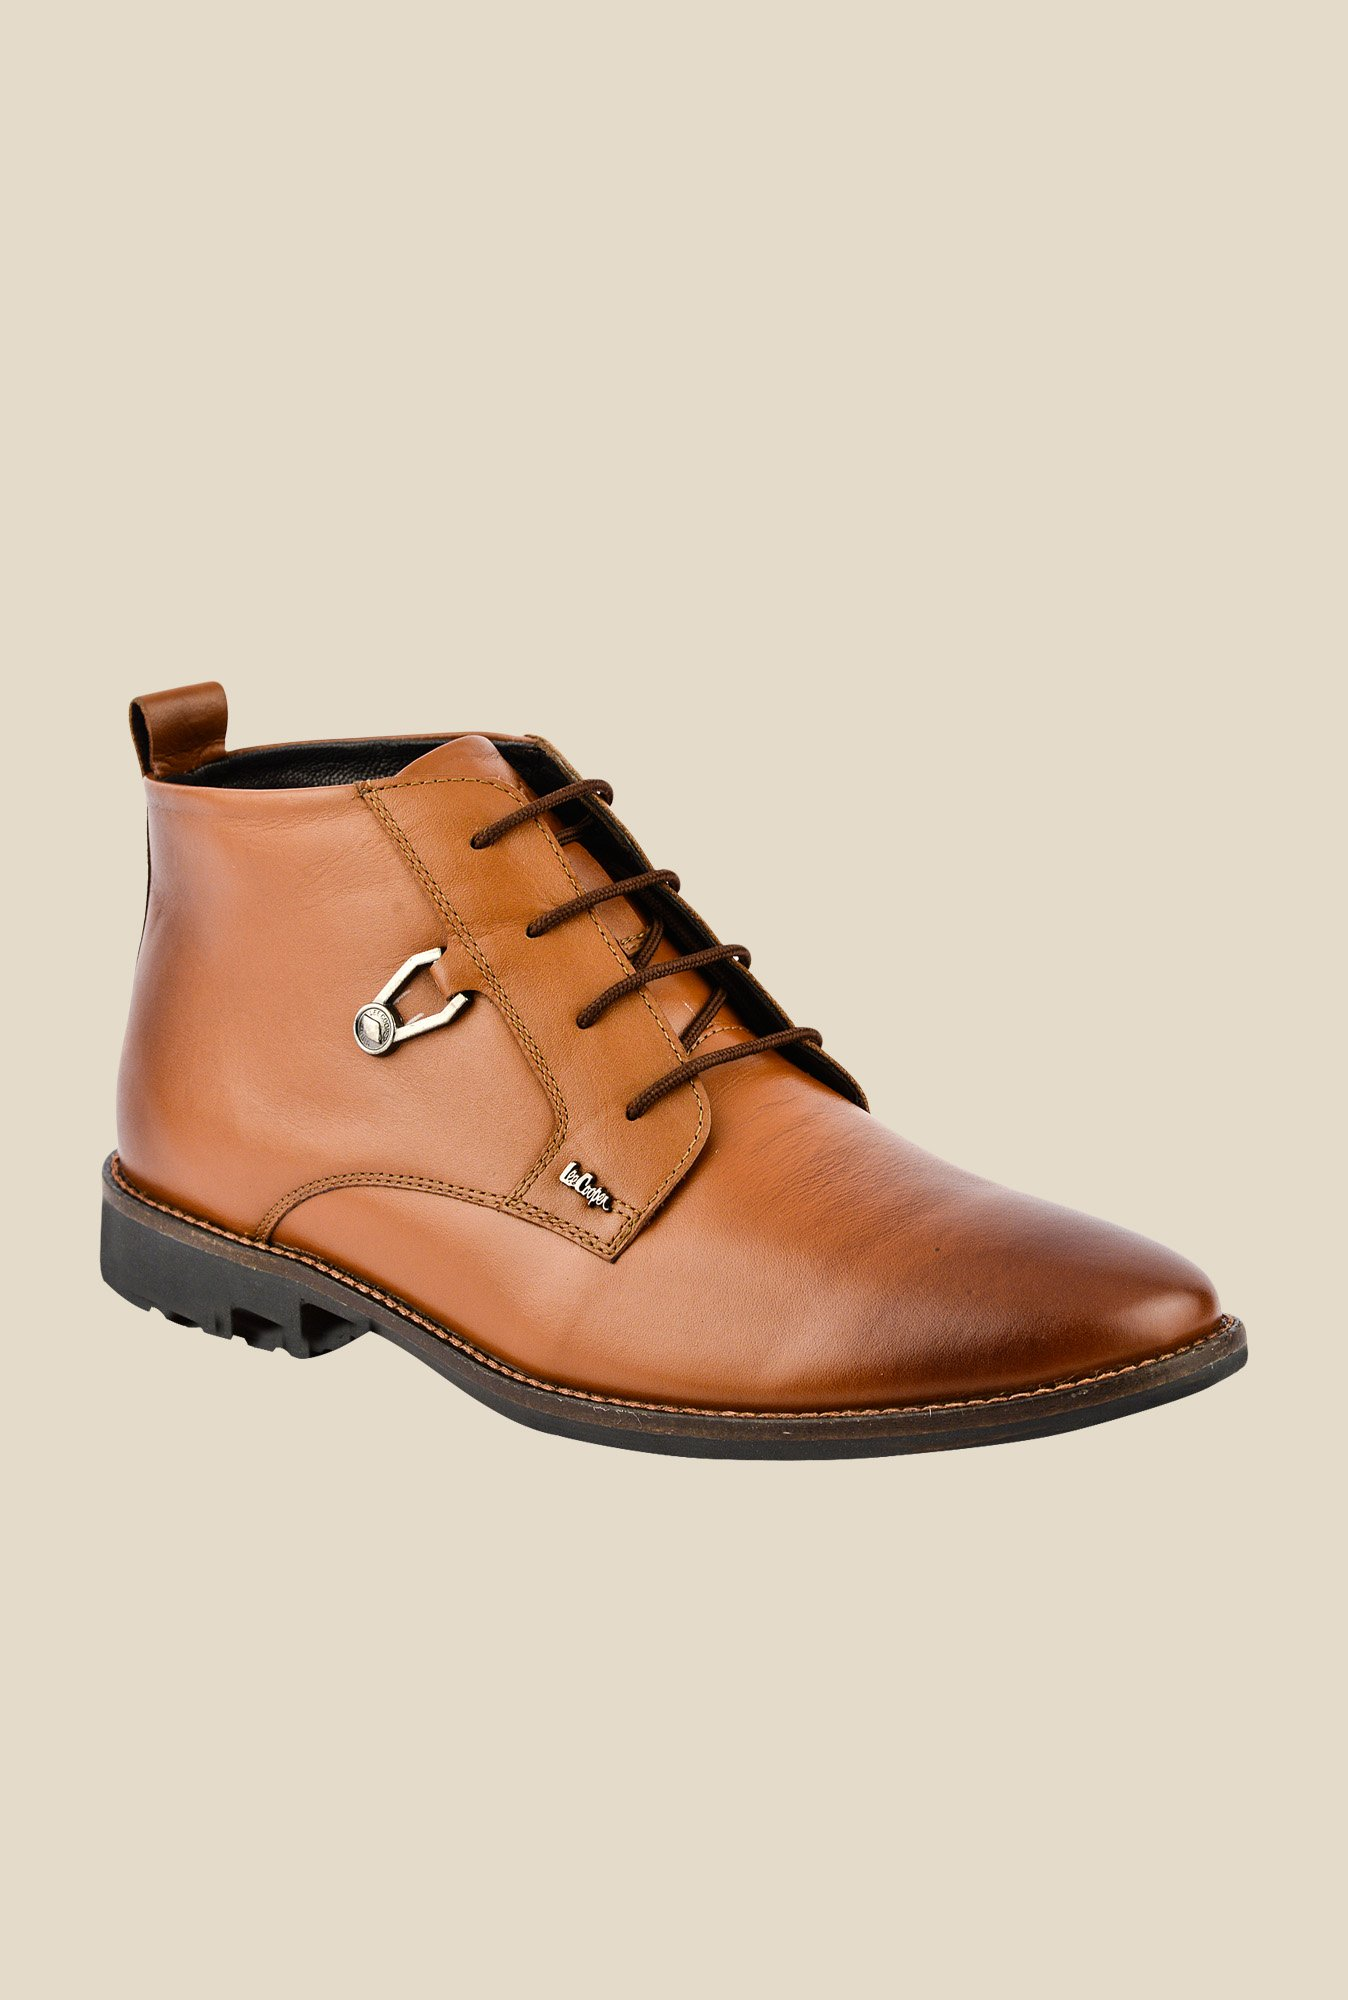 Lee Cooper Tan Formal Boots